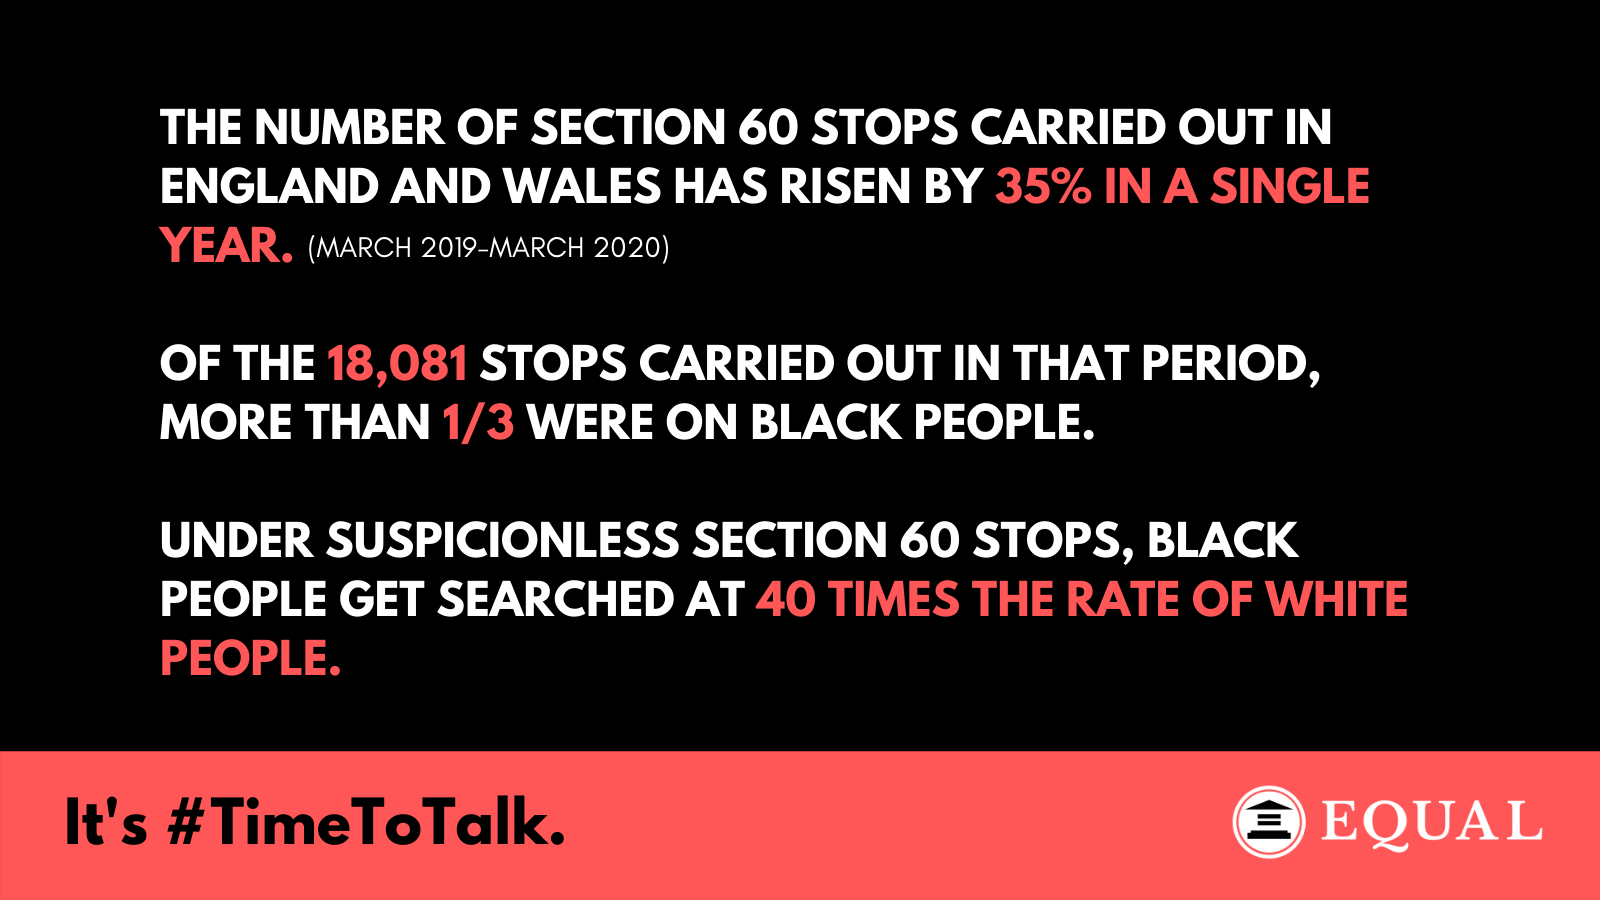 Statistics of Stop and Search from 2019 - 2020